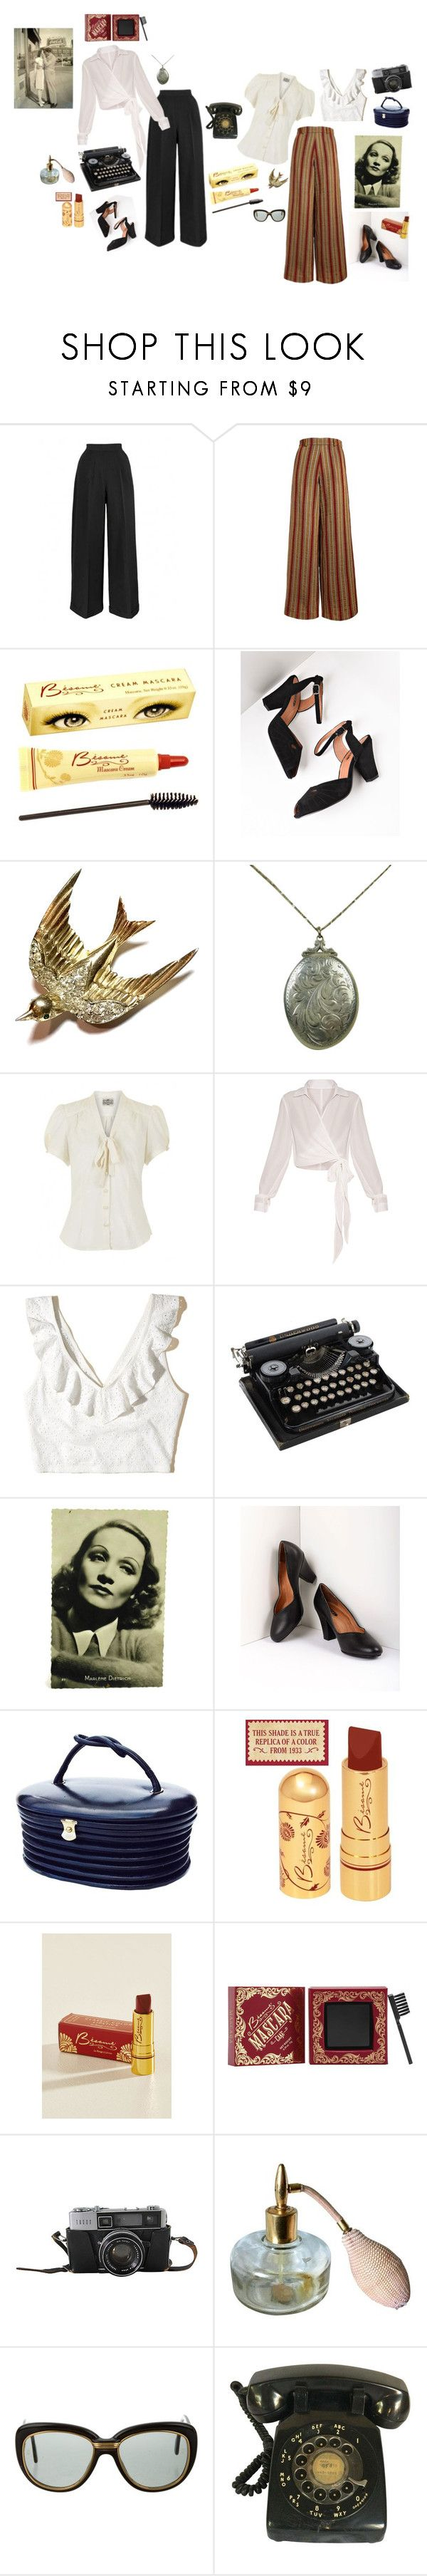 """""""1940s"""" by willow44444 ❤ liked on Polyvore featuring The Bee's Sneeze, Royal Vintage, CORO, Hollister Co., Bésame, Cartier, vintage, oldhollywood, 40s and 1940s"""